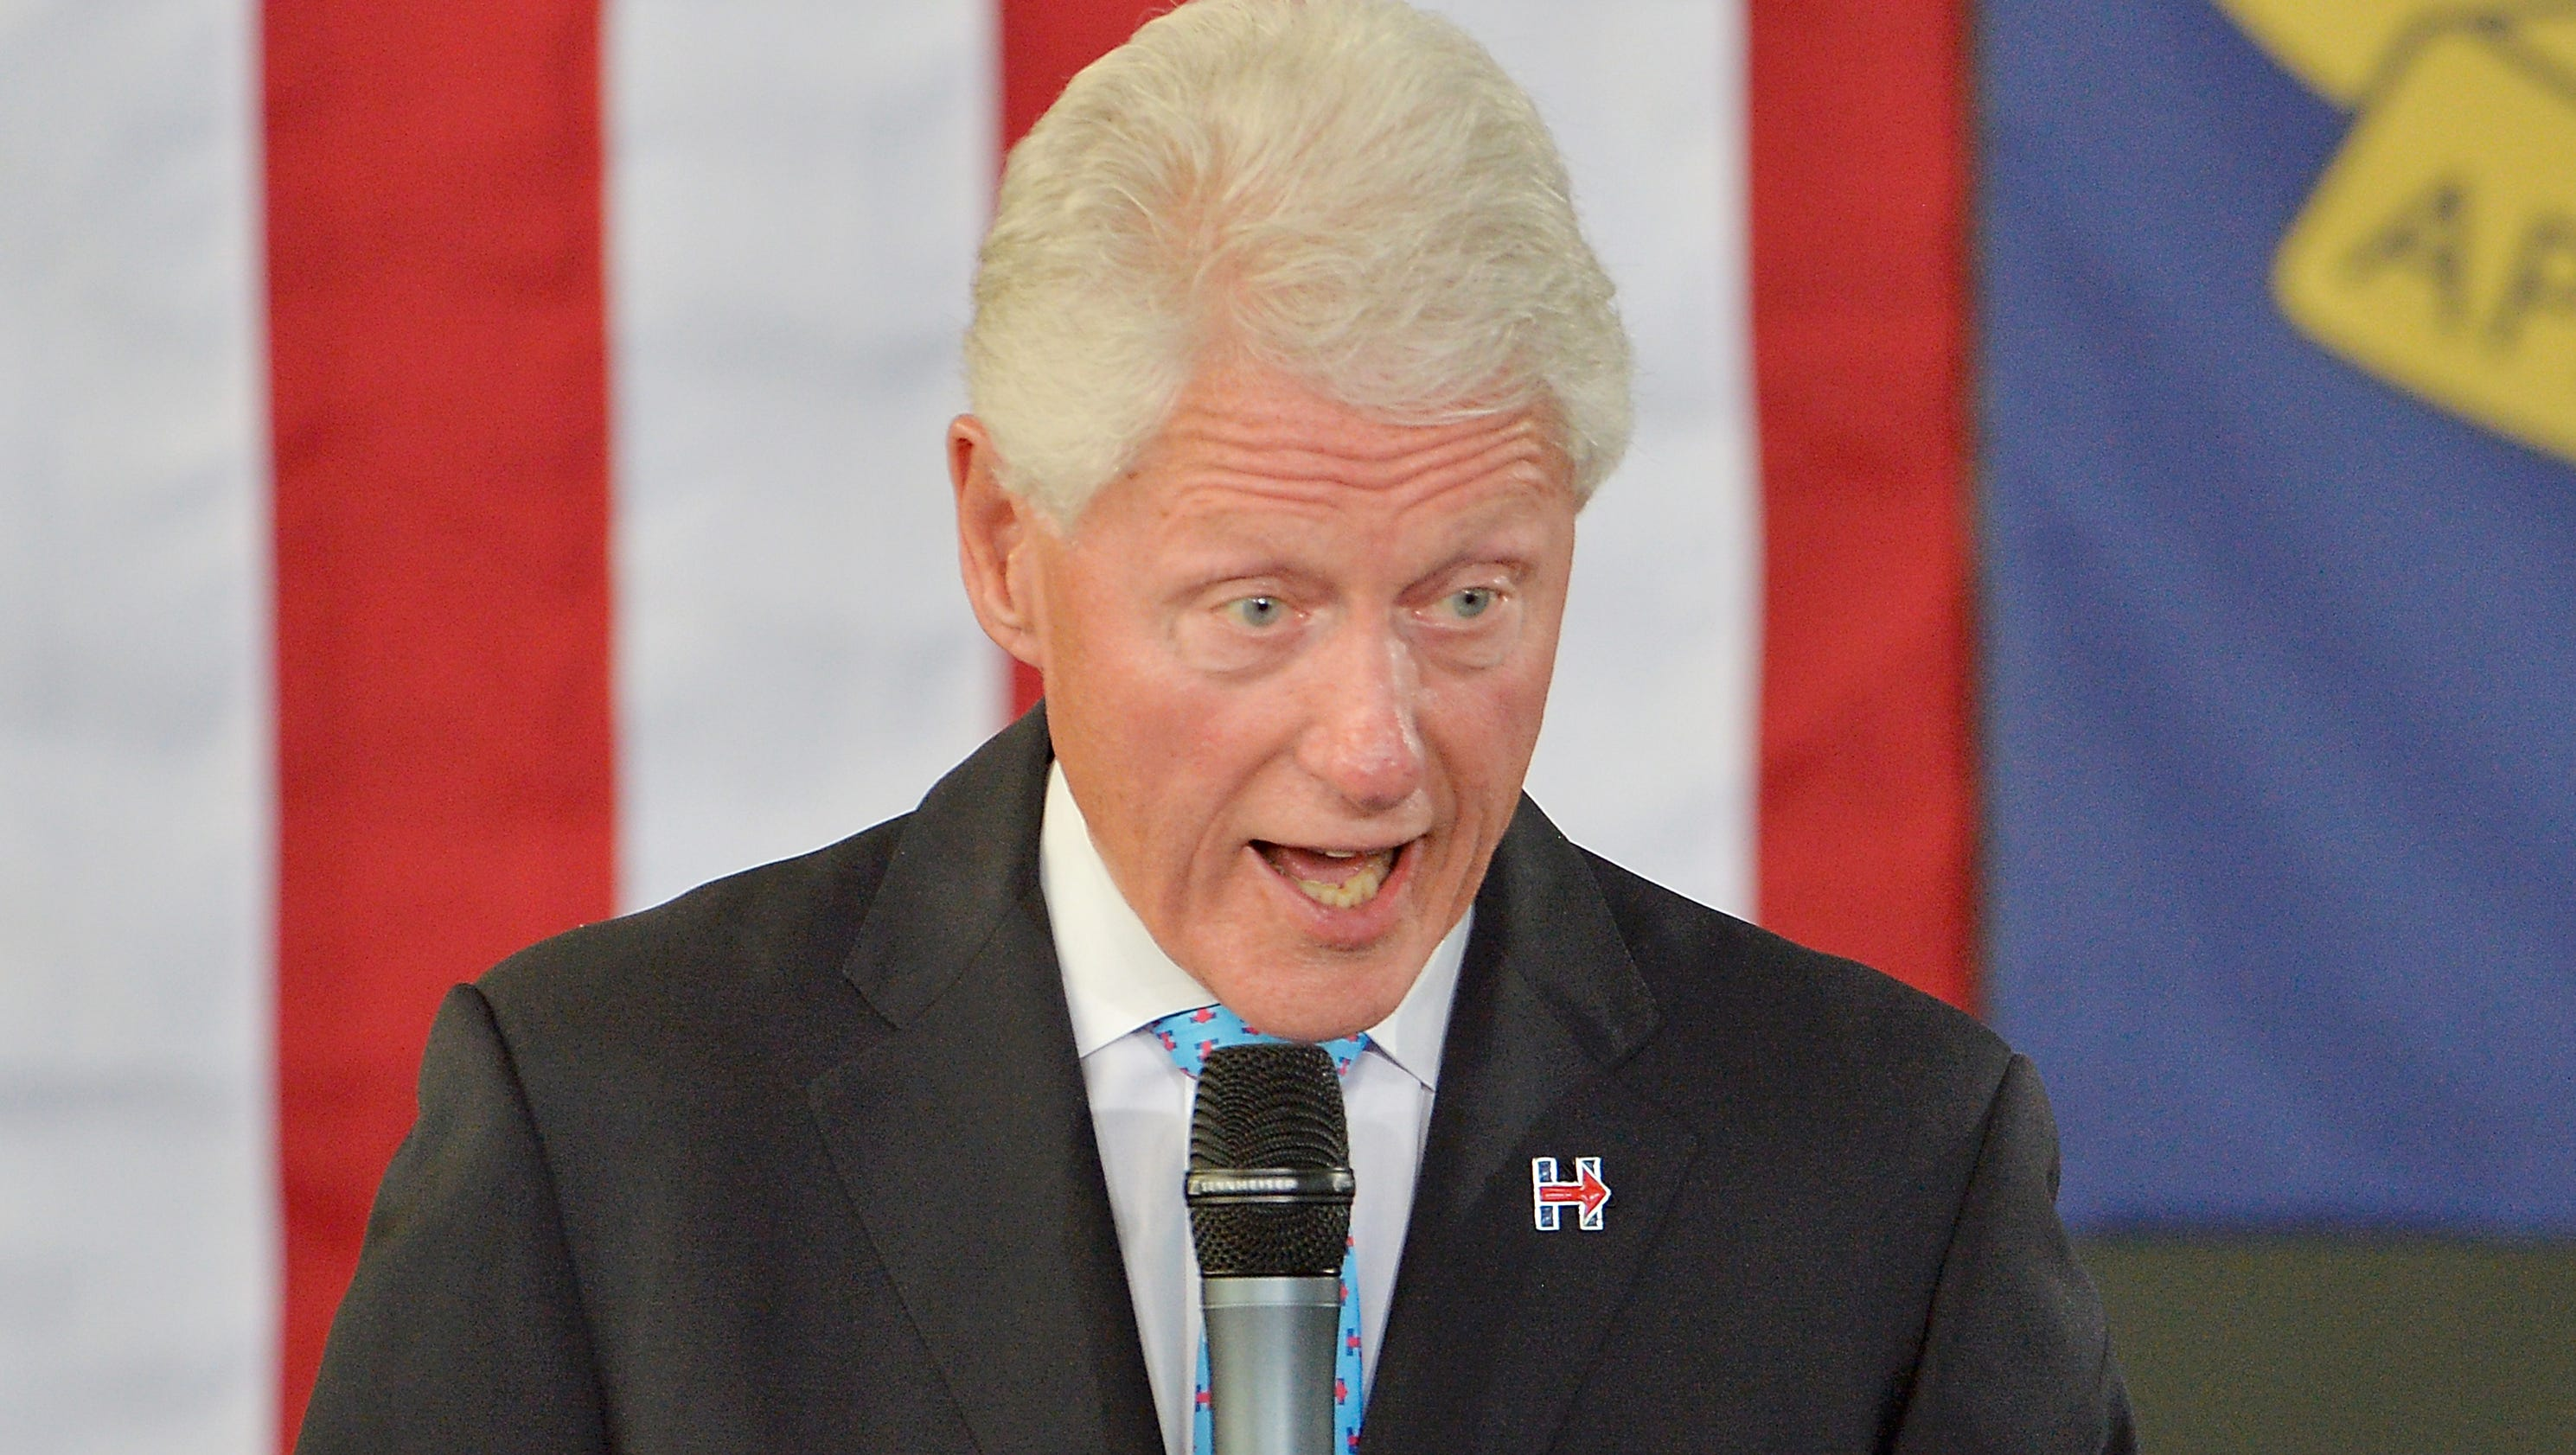 a biography of president bill clinton This book uses hundreds of hours of newly opened interviews and other sources  to illuminate the life and times of the nation's forty-second president, bill clinton.